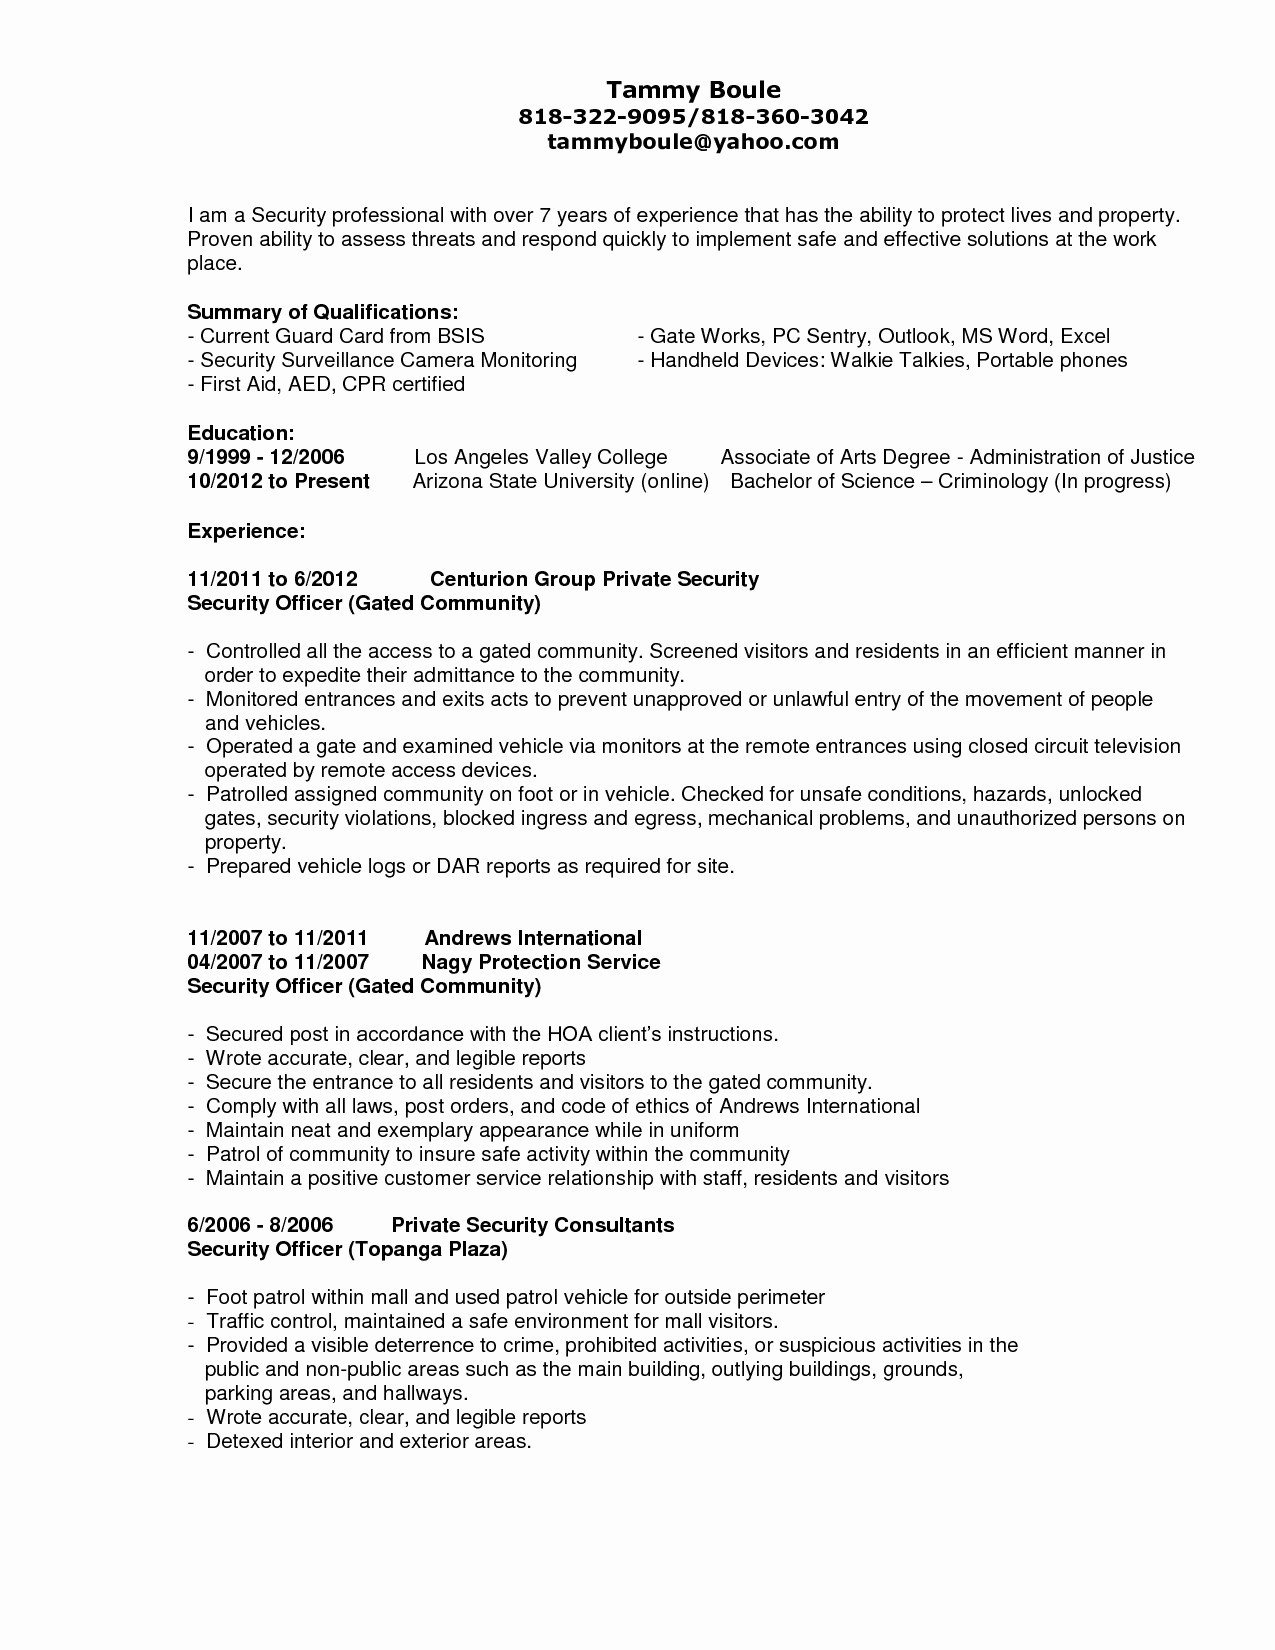 Best Place to Post Resume - Resume Examples Monster Best Monster Resume Luxury Monster Resume